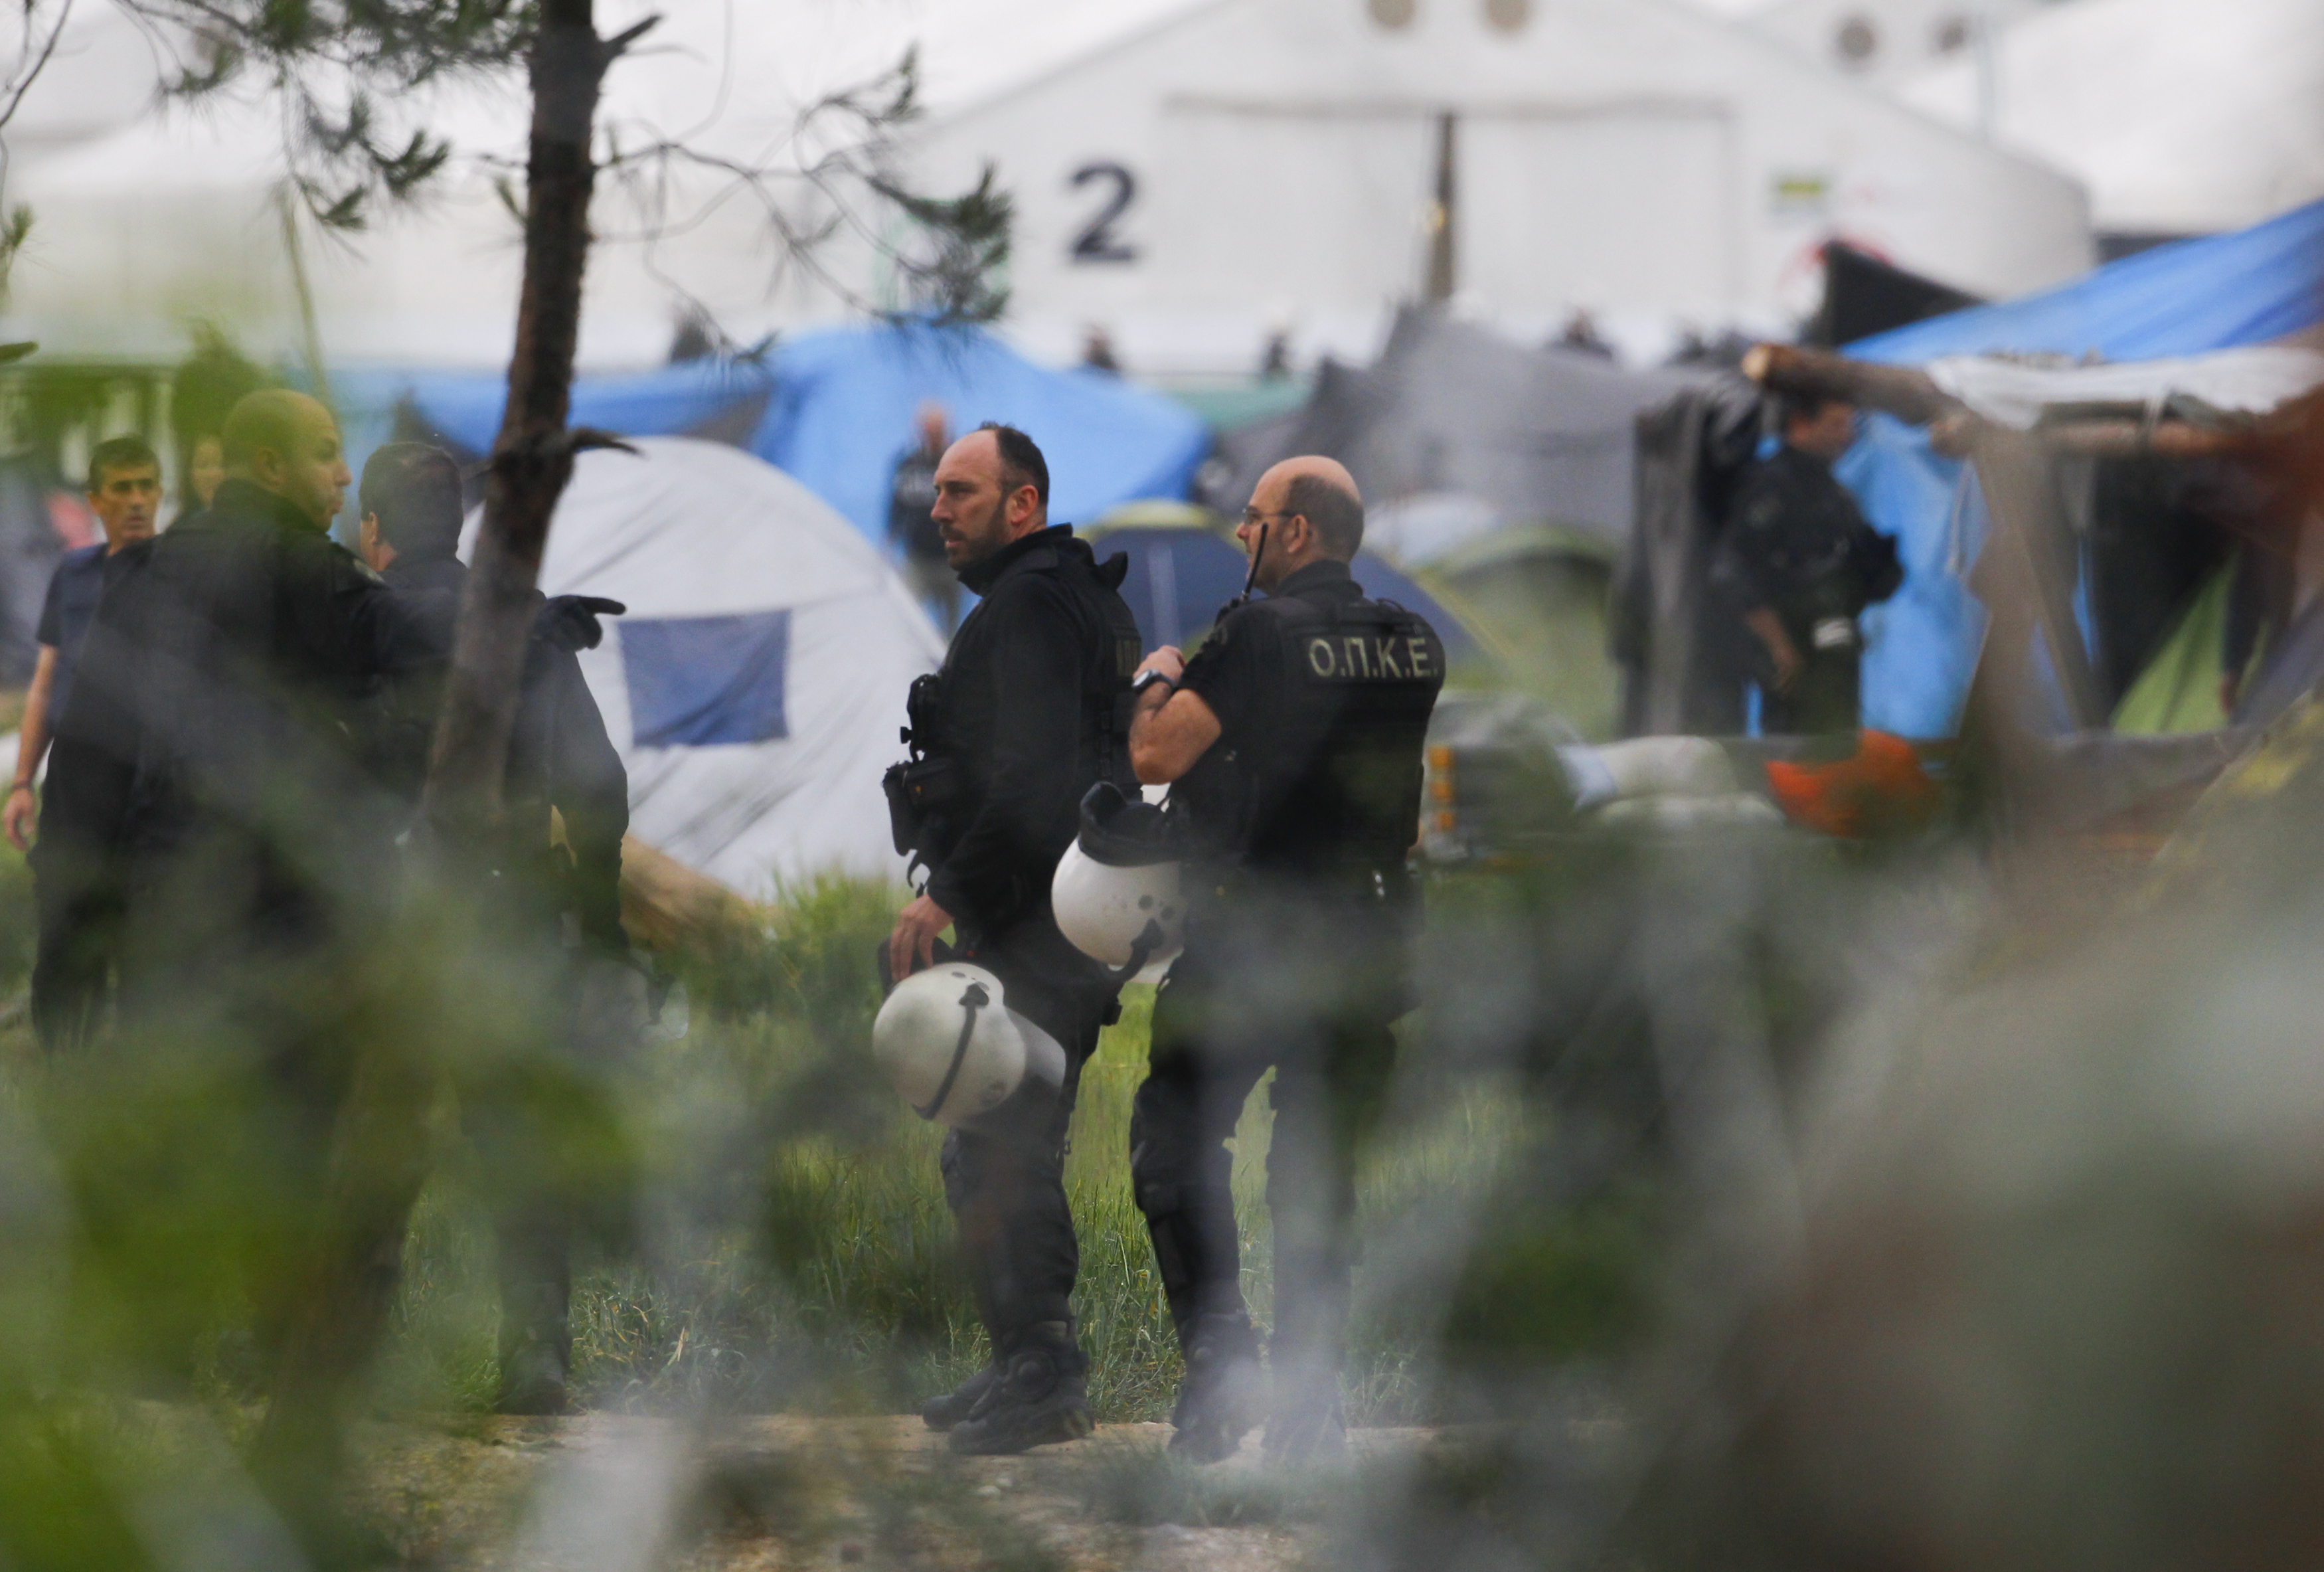 Greek policemen operate at a makeshift camp for migrants and refugees at the Greek-Macedonian border near the village of Idomeni, Greece, on May 24, 2016